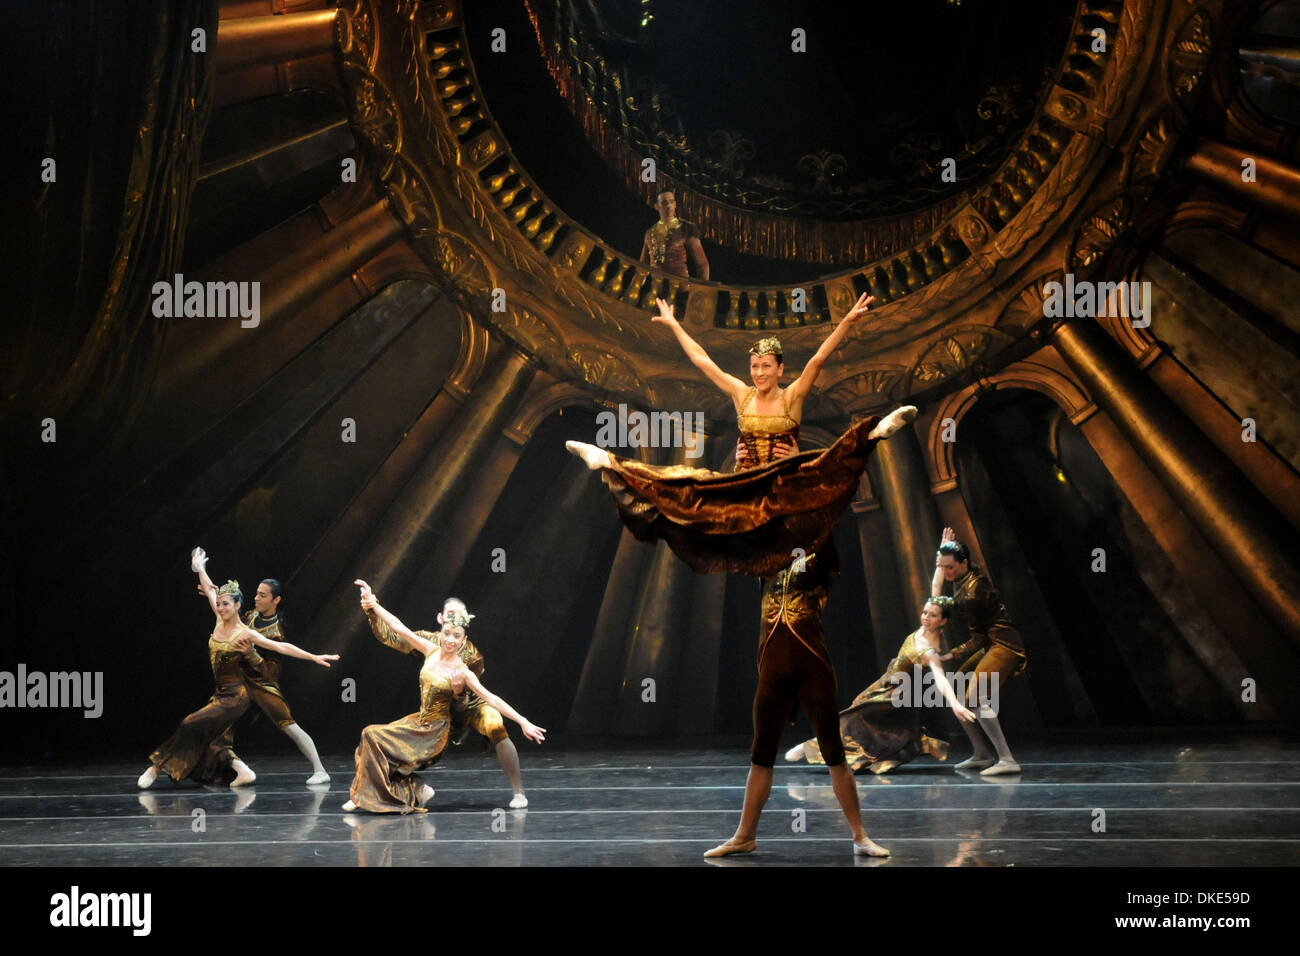 Montevideo, Uruguay. 4th Dec, 2013. Dancers from the National Ballet of Sodre present the play 'Russian Hamlet', directed by Argentinian dancer, Julio Bocca, at the National Auditorium of Sodre Dra. Adela Reta, in Montevideo, capital of Uruguay, on Dec. 4, 2013. Credit:  Nicolas Celaya/Xinhua/Alamy Live News - Stock Image